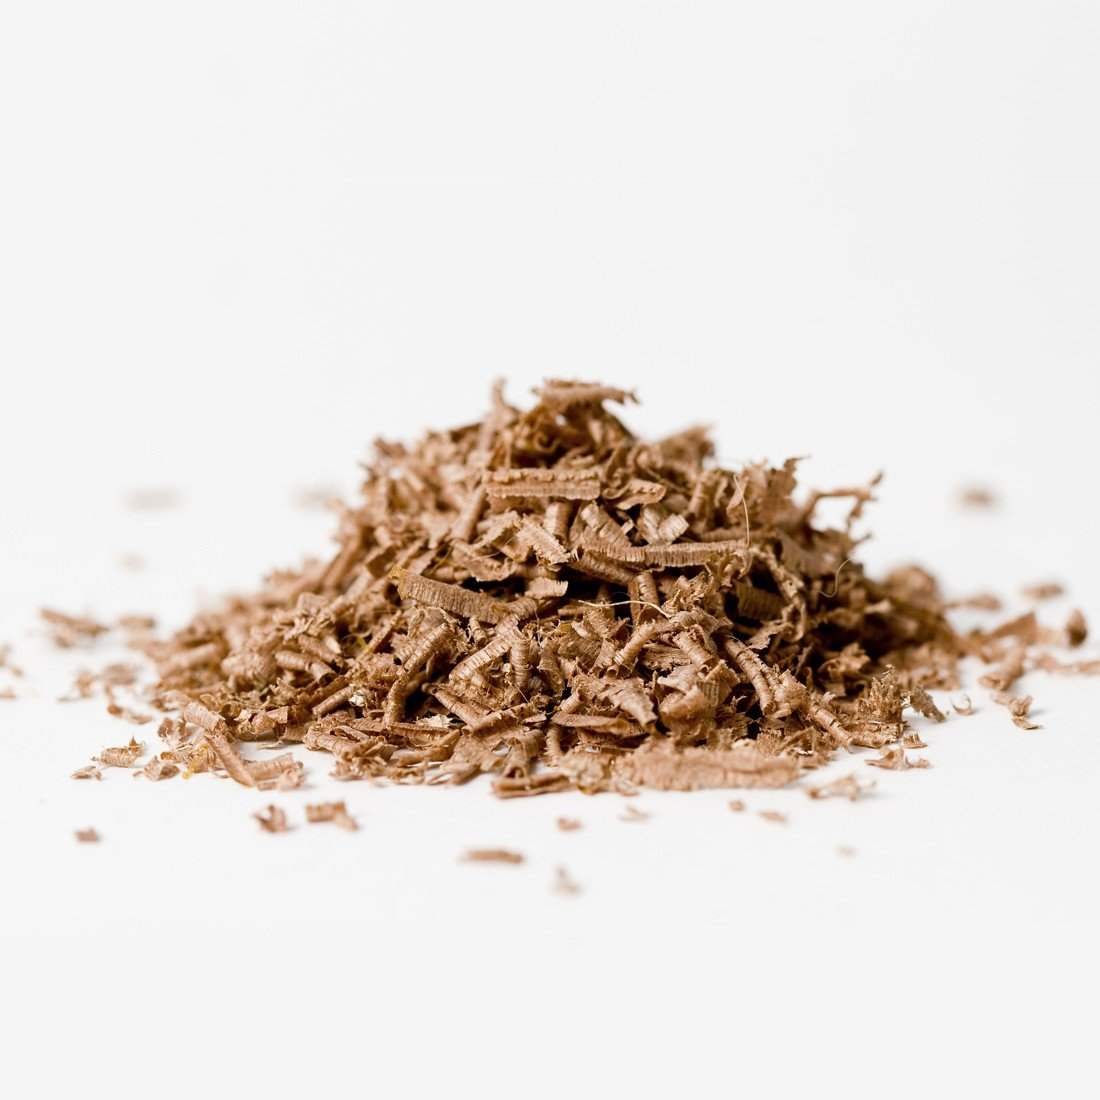 Polyscience Bourbon Soaked Oak Wood Chips for Polyscience Smoking Gun, 500 ml SVT-CHIPSBOU